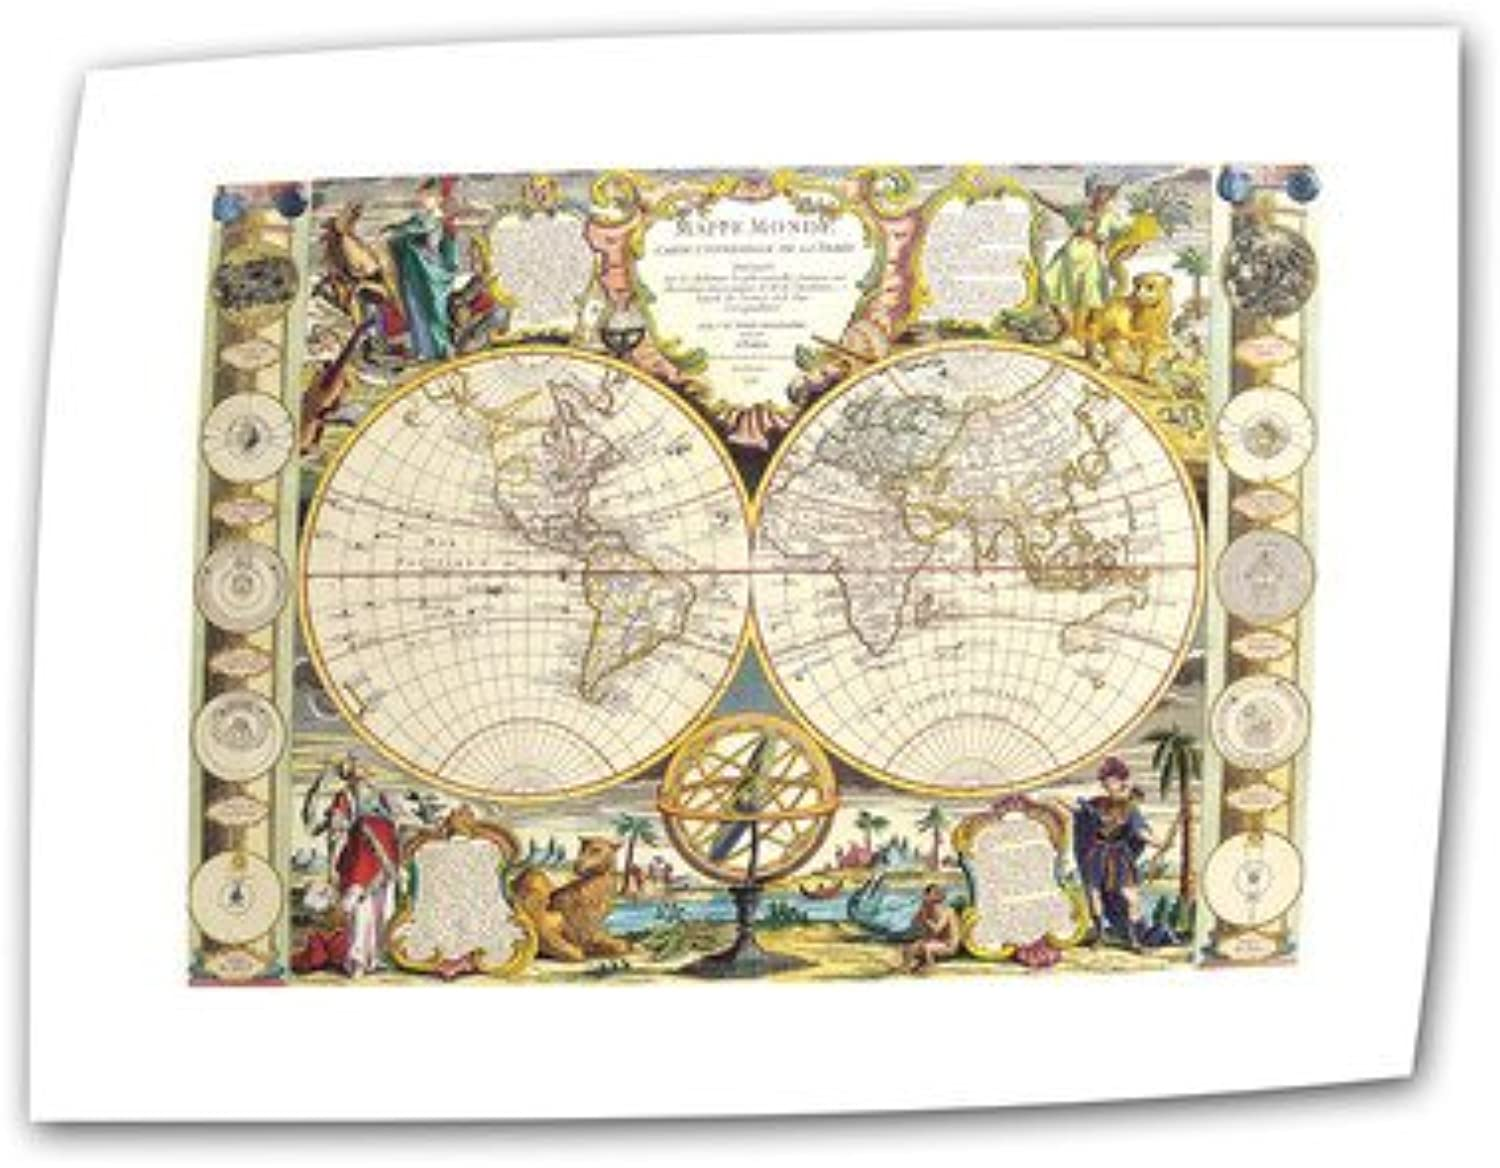 Art Wall Samuel Dunn 'Mappe-Monde Carte Universelle de la Terre Dressee' Flat Unwrapped Canvas Artwork, 18 by 22-Inch, Holds 14 by 18-Inch Image